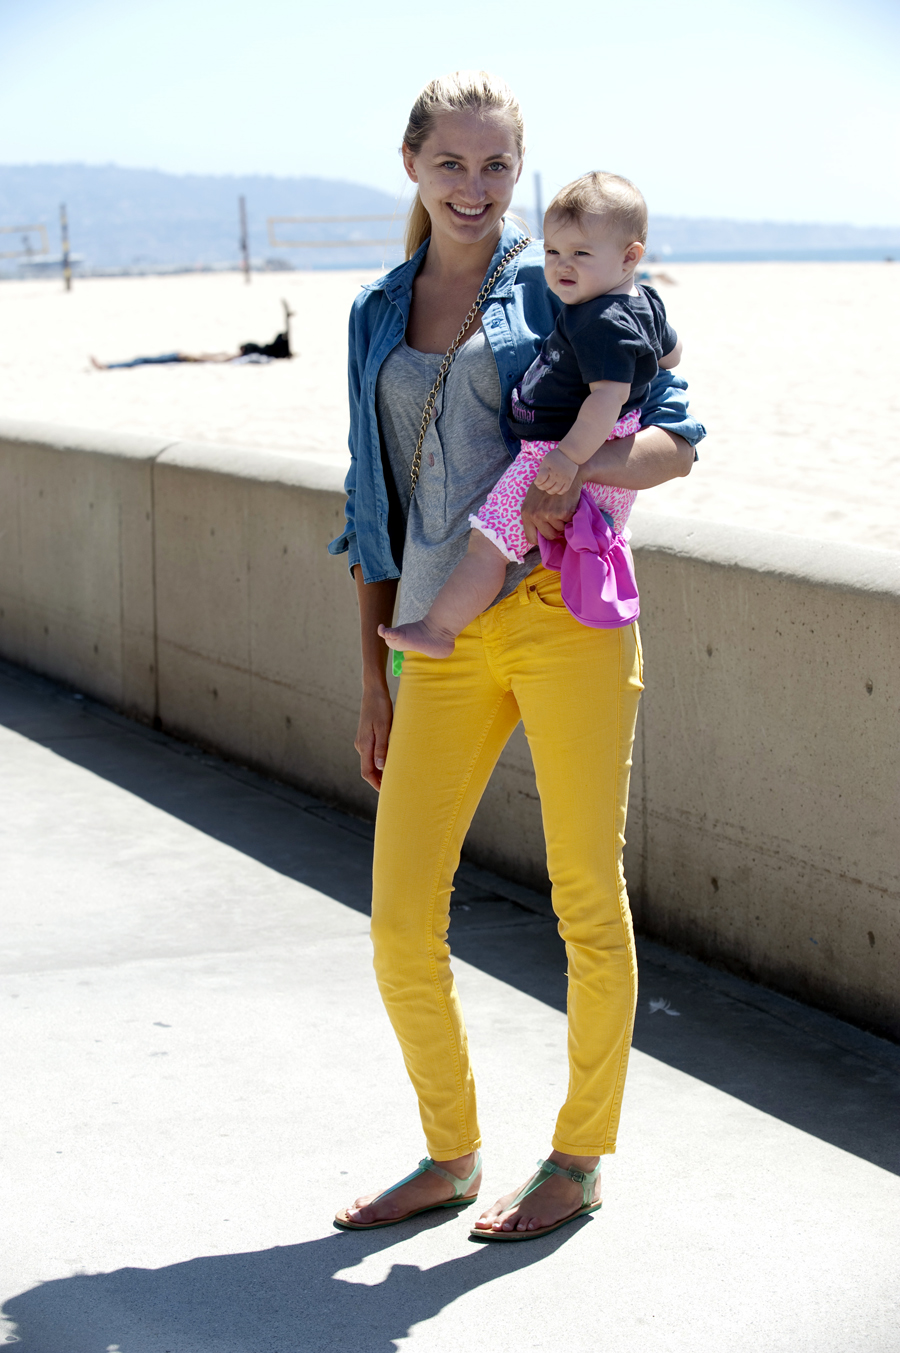 Tessa Lacy with her daughter Autumn in Hermosa Beach